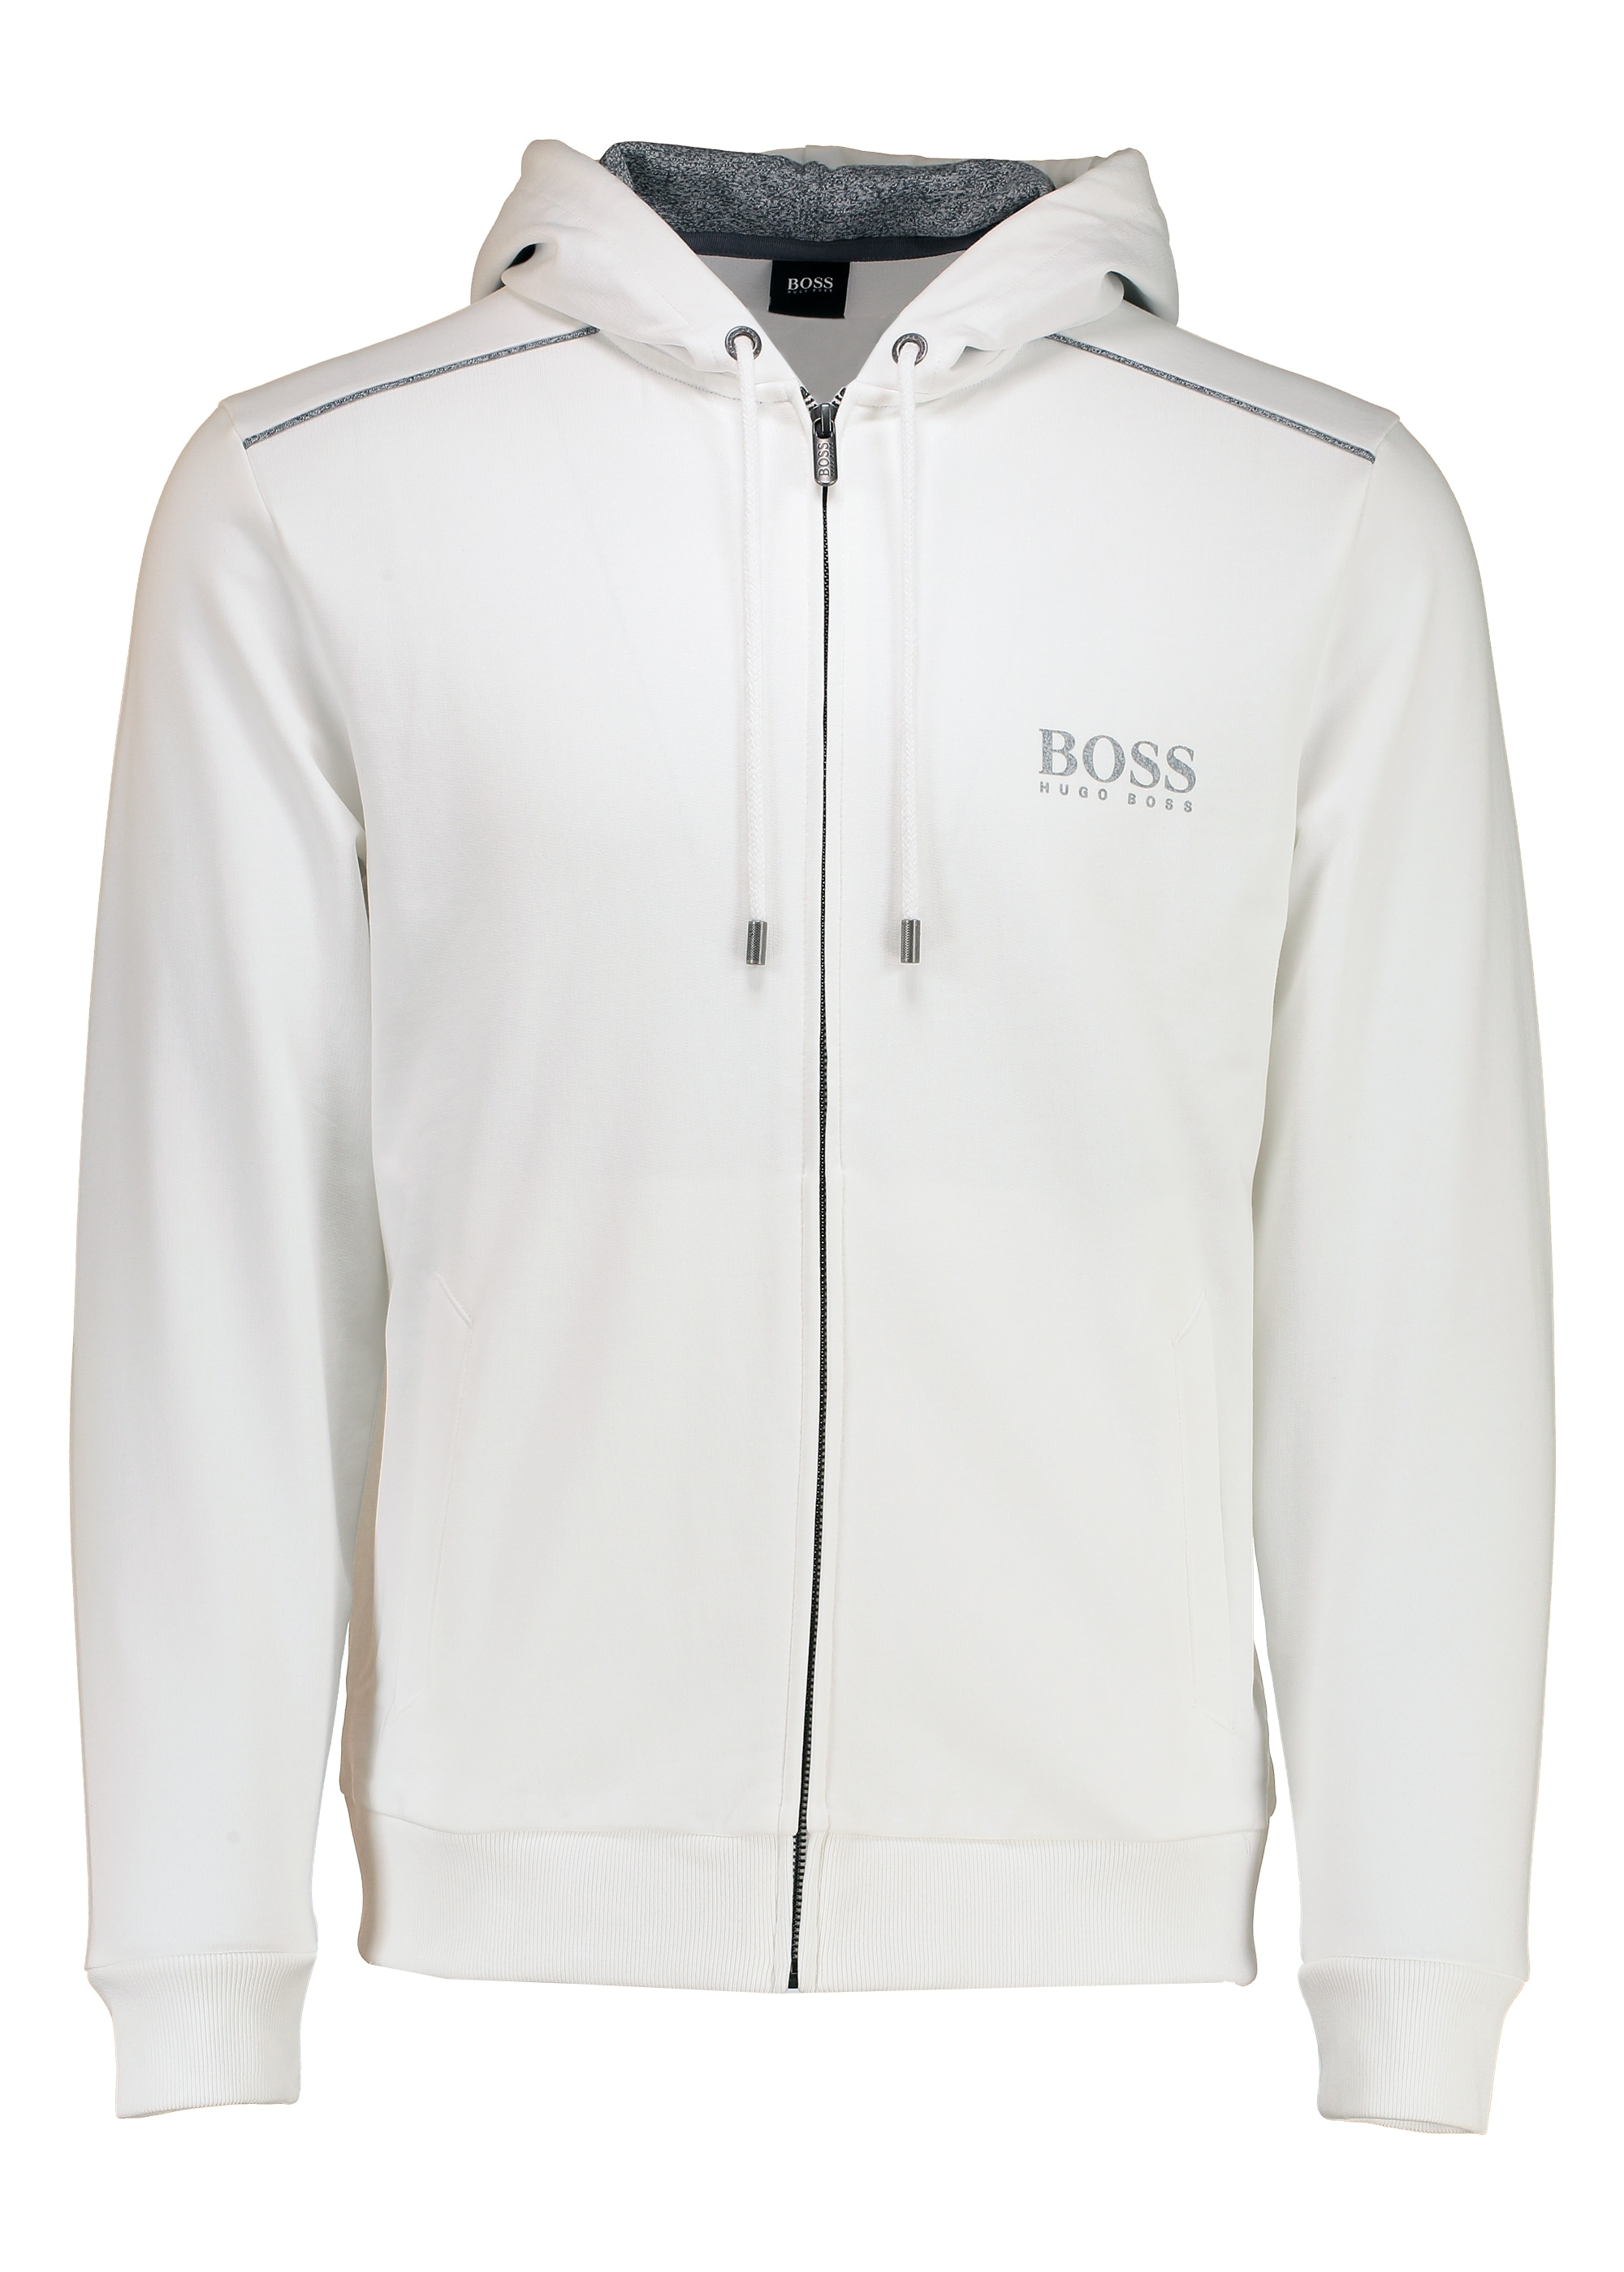 daf42946 BOSS Hooded Jacket - White - Hoodies from Triads UK